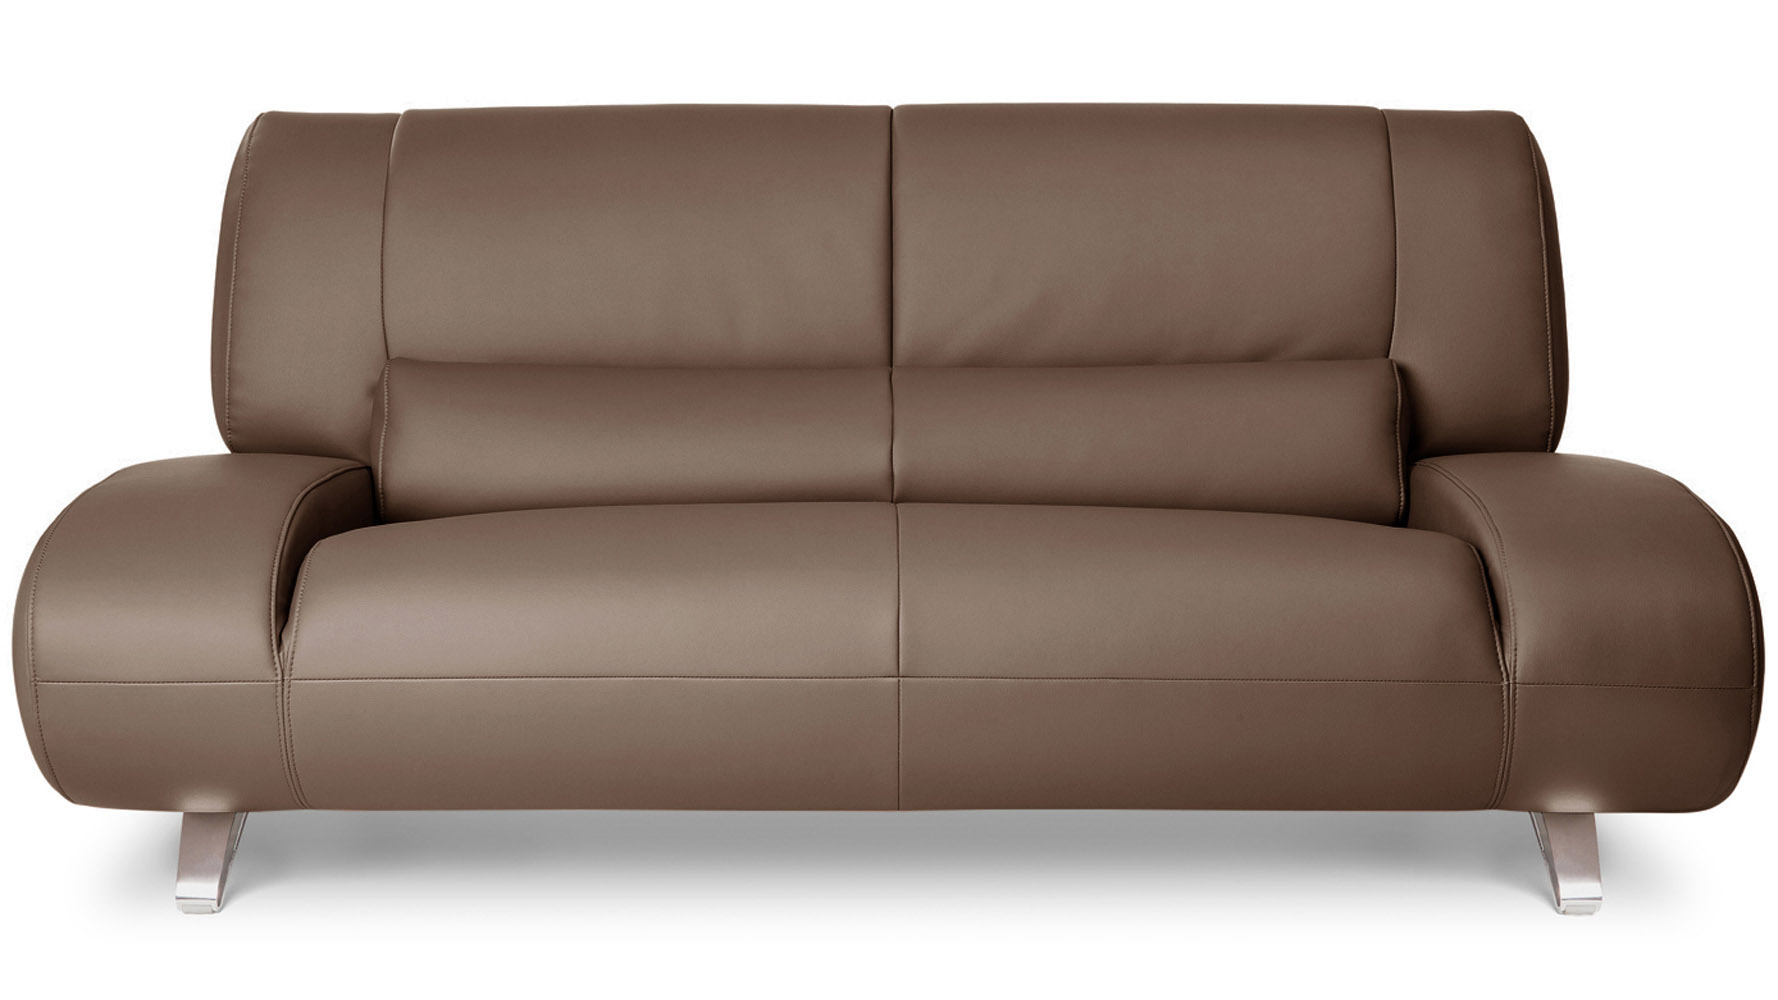 New aspen leather sofa set sofa review for Aspen sectional leather sofa with ottoman reviews